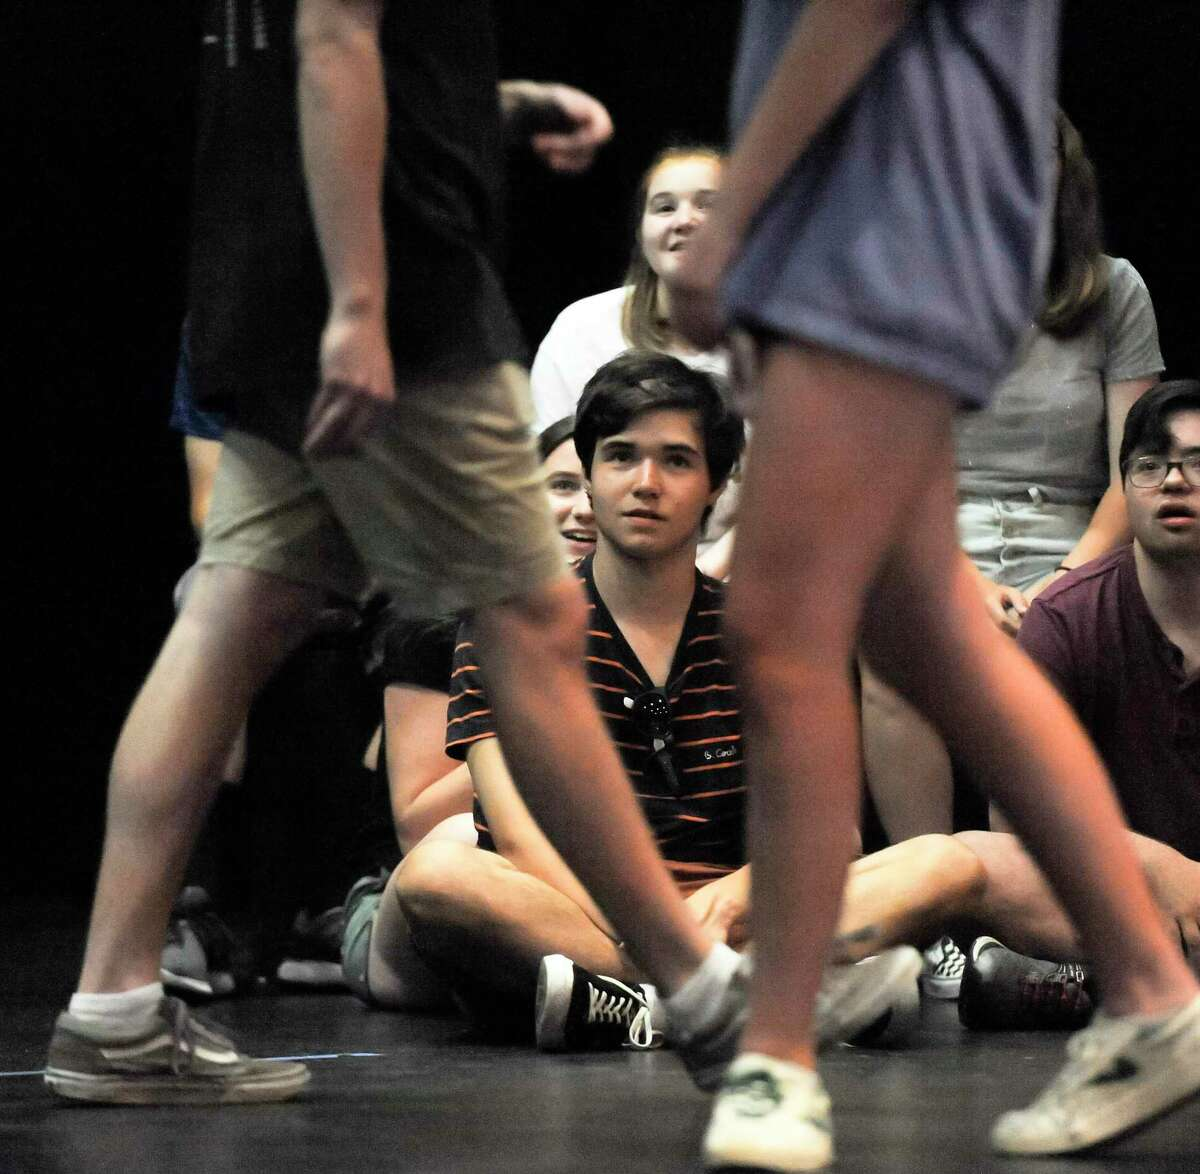 Oliver White, center, watches as cast members perform a dance routine during the Off Beat Players rehearsal for Joseph and the Amazing Technicolor Dreamcoat on July 19, 2019 at the Performing Arts Center of Greenwich Country Day School in Greenwich, Connecticut. Off-Beat Players, is a Greenwich-based nonprofit theater company, that provides young adults with disabilities the opportunity to participate in a performing arts program. The company performs fully staged musicals with a live orchestra each summer.